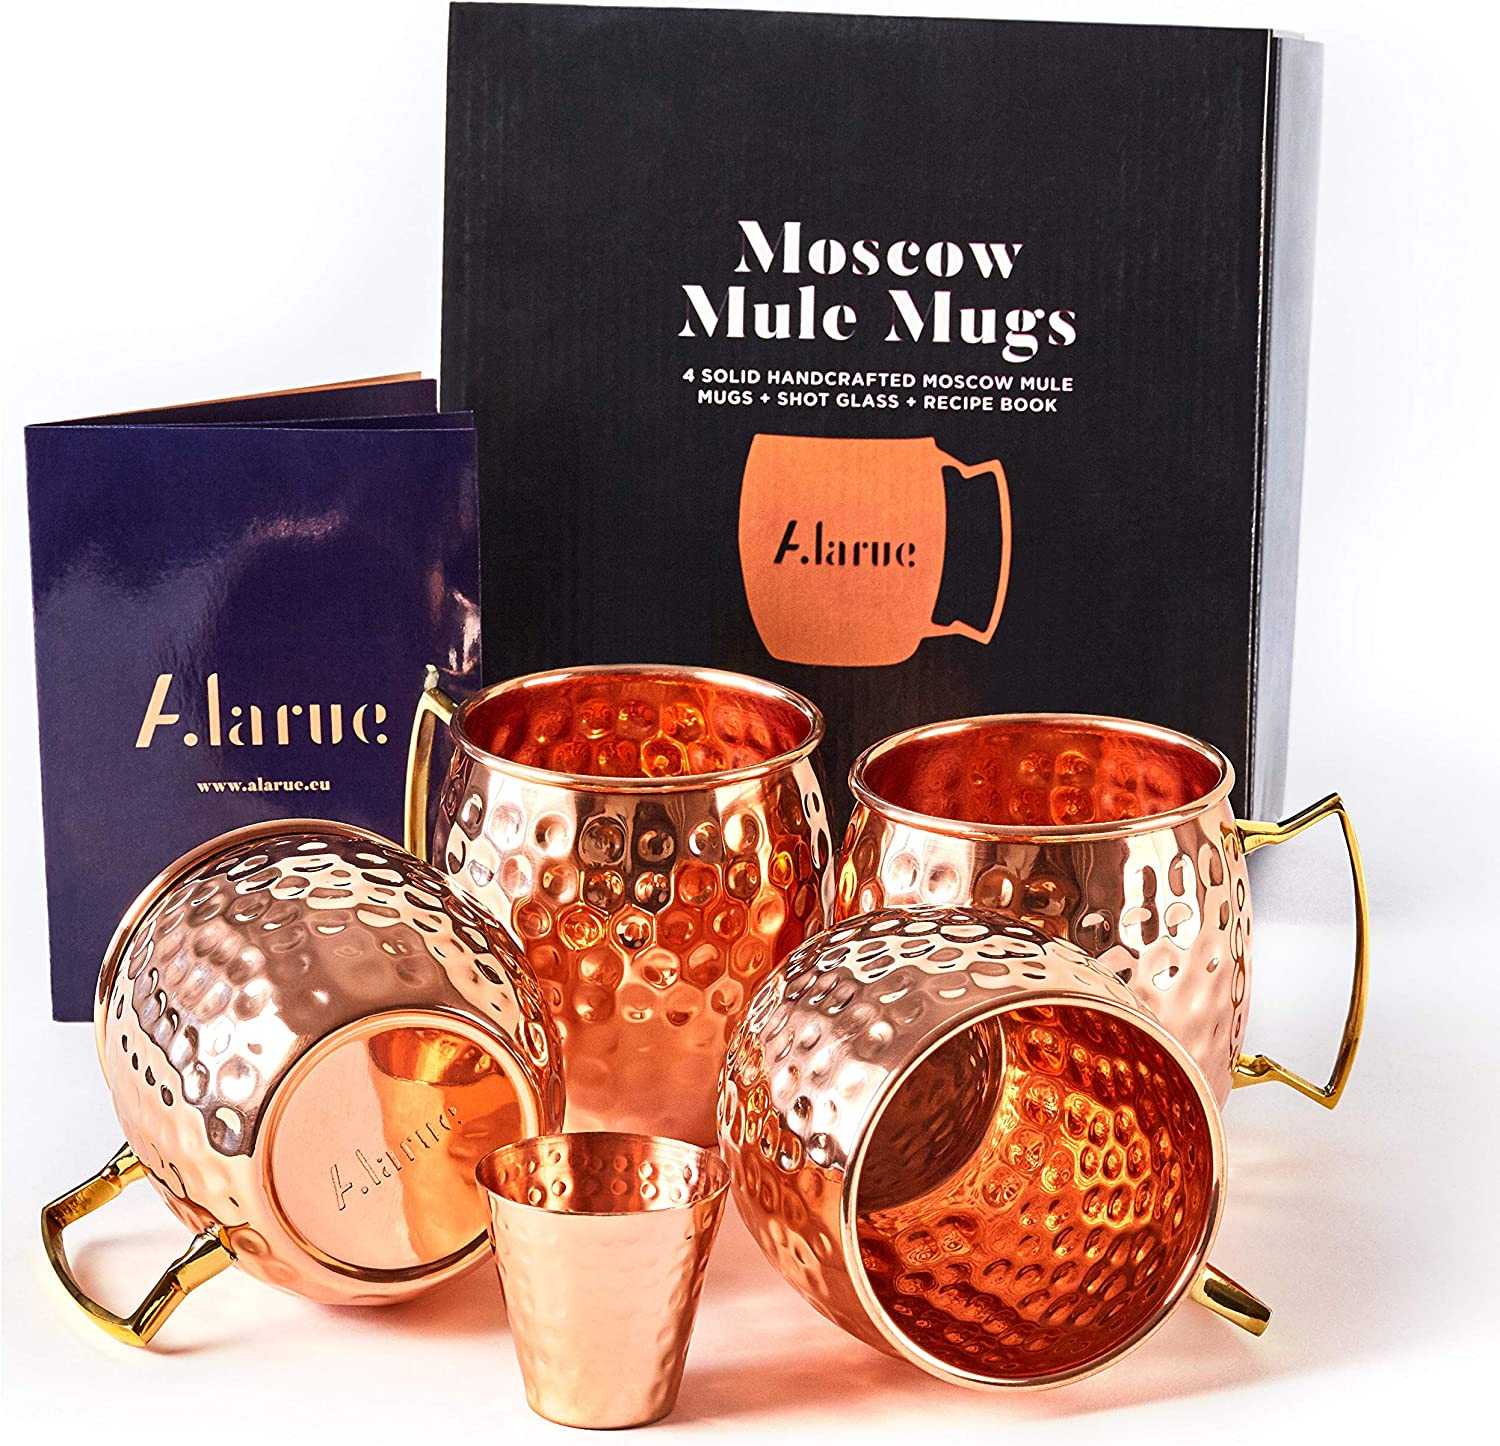 Moscow Mule Copper Mugs Set - 4 Authentic Handcrafted Mugs (16 oz.) with Shot Glass (2 oz.) - Food Safe Pure Solid Copper Mugs - Gift set with Recipe Book Included